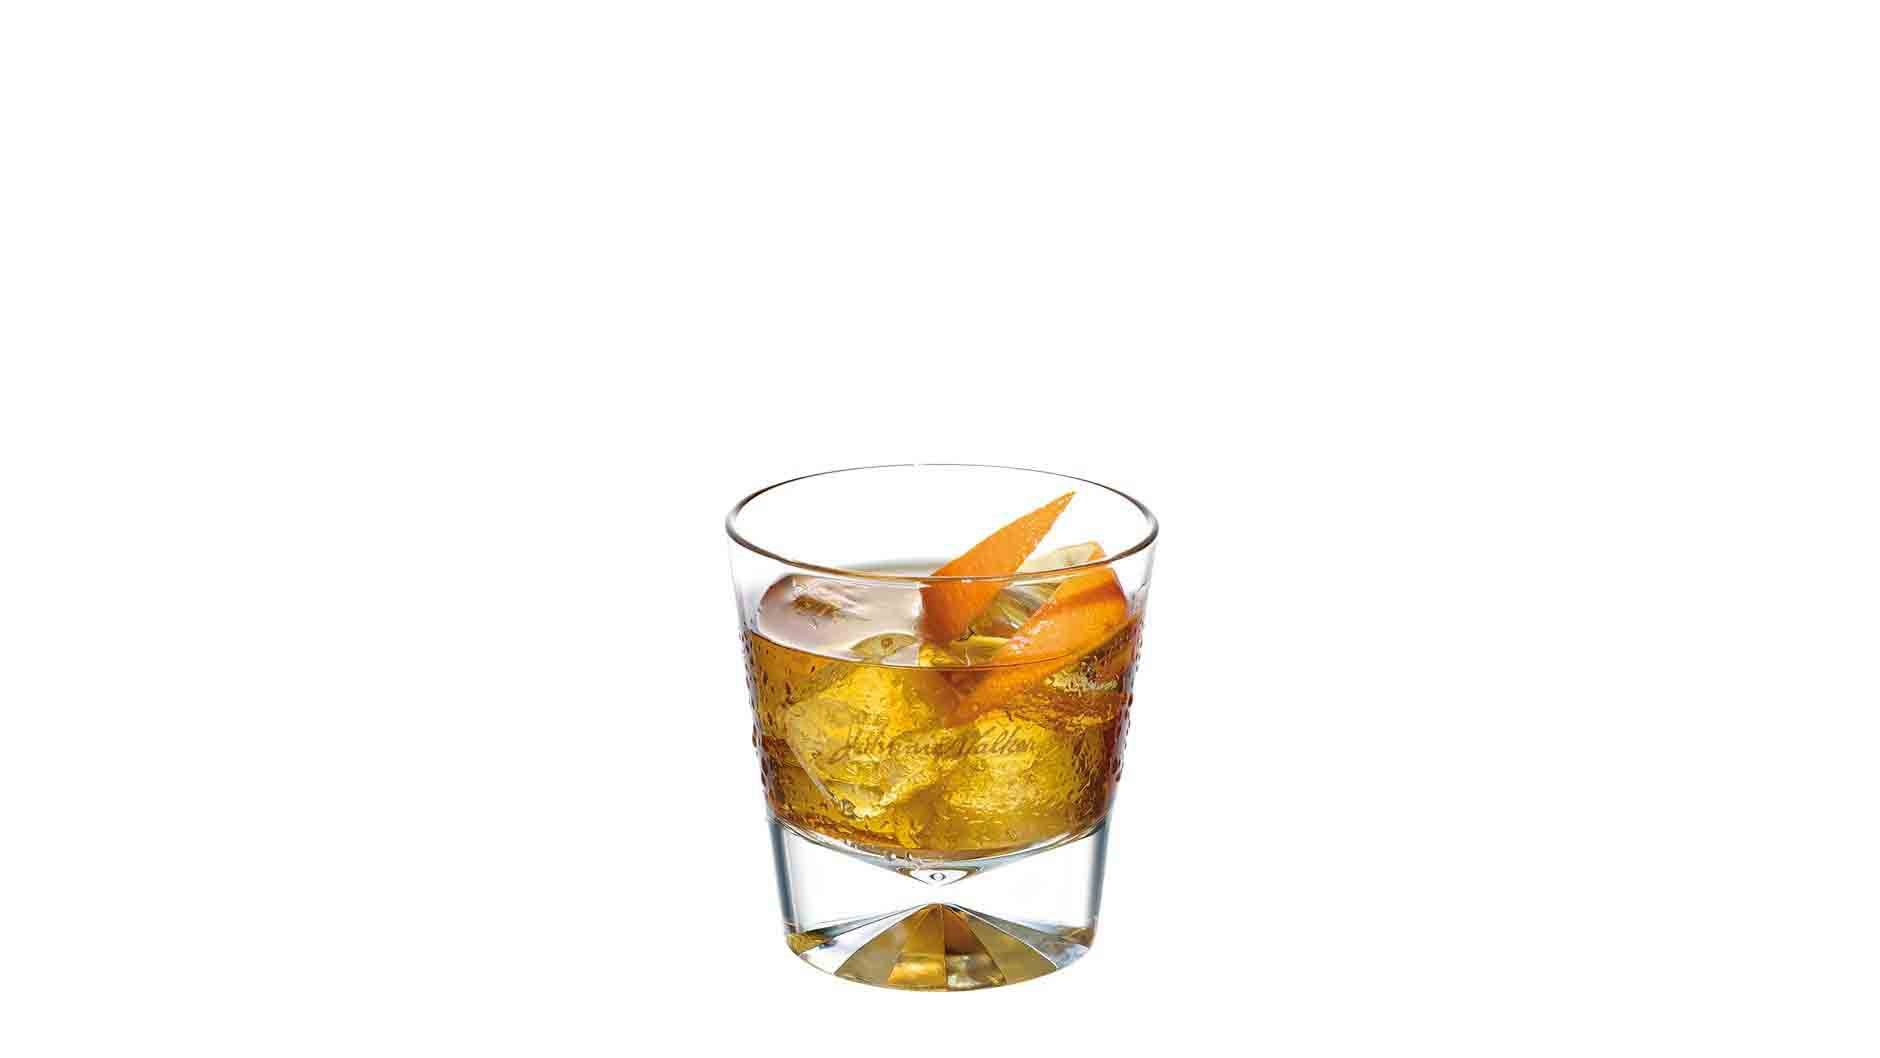 Cóctel Gold Fashioned en un vaso de whisky